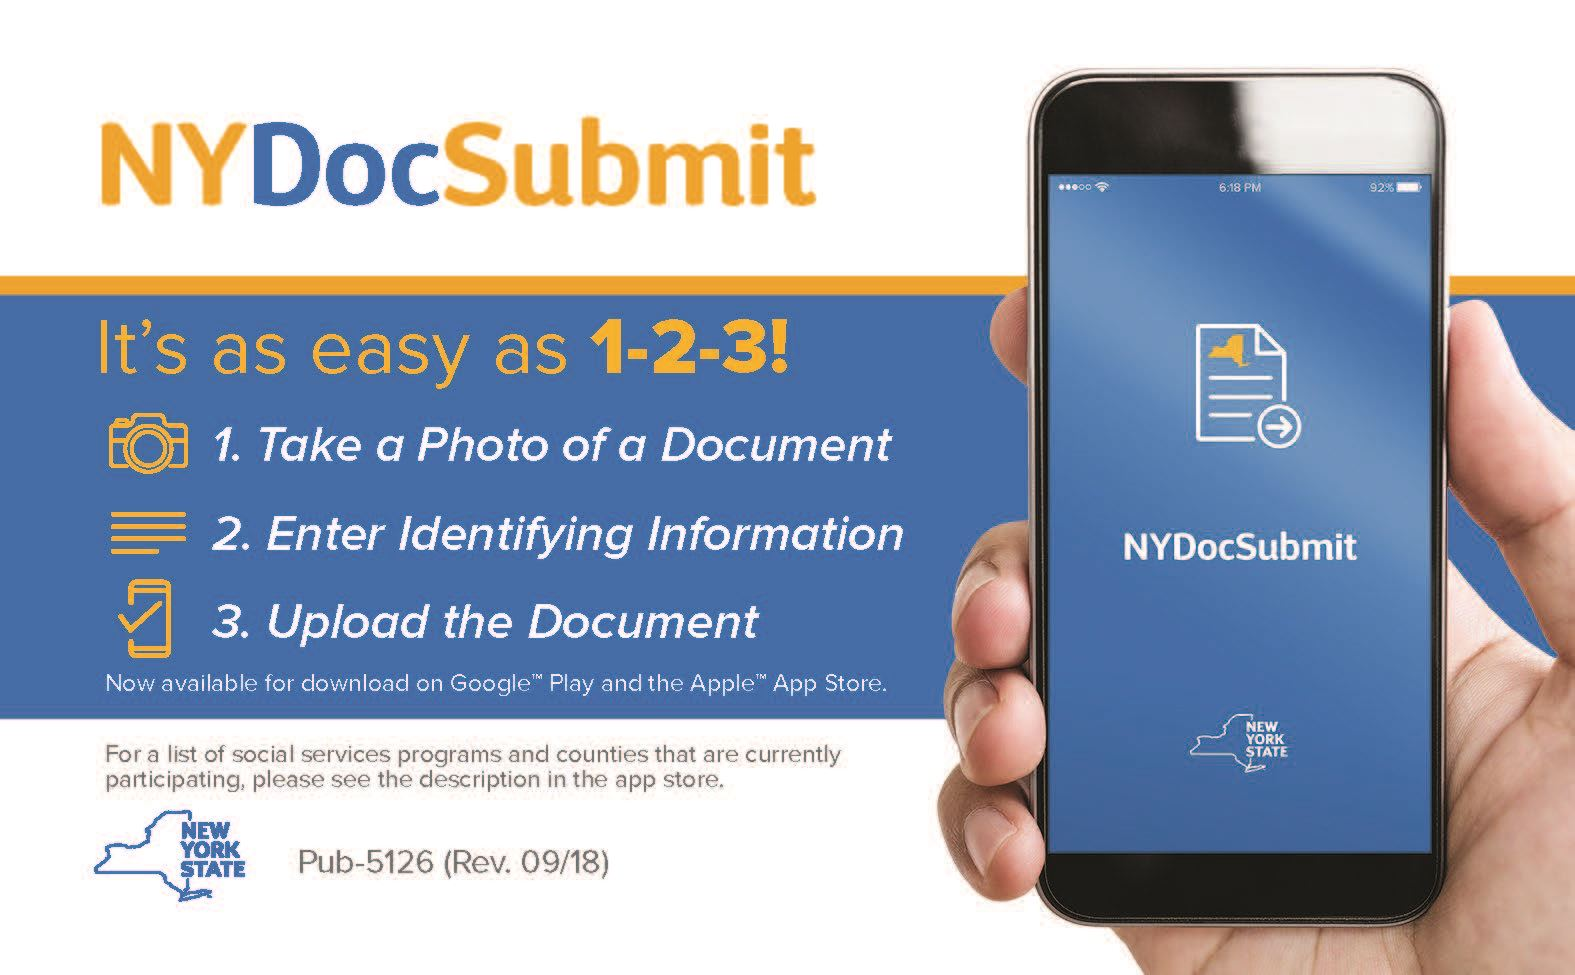 DSS - Pub-5126-NYDocSubmit-Palm-Card